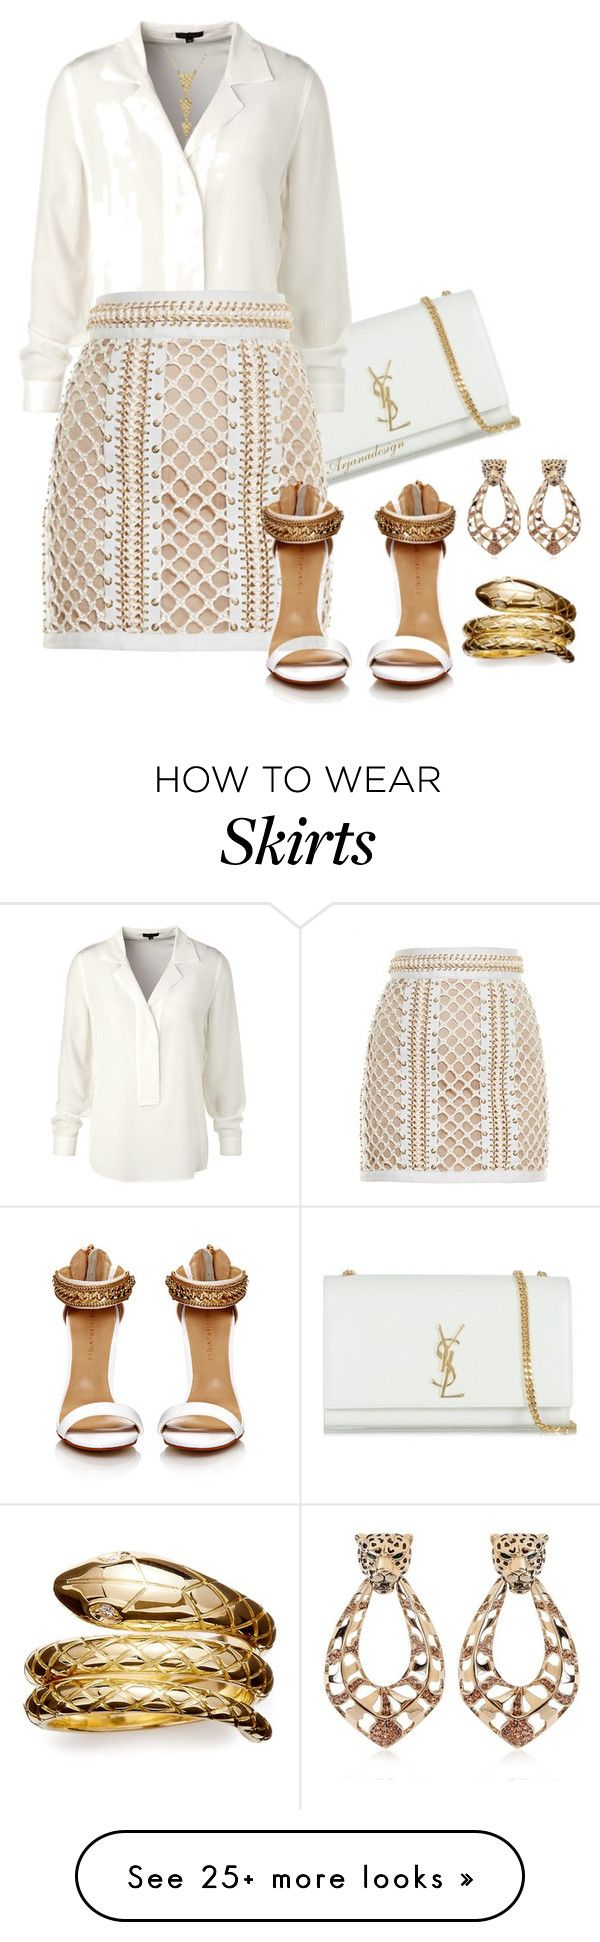 """BALMAIN LACE-UP MINI SKIRT"" by arjanadesign on Polyvore featuring Yves Saint Laurent, ESCADA, Balmain, Temple St. Clair, Roberto Cavalli, skirts and balmain"